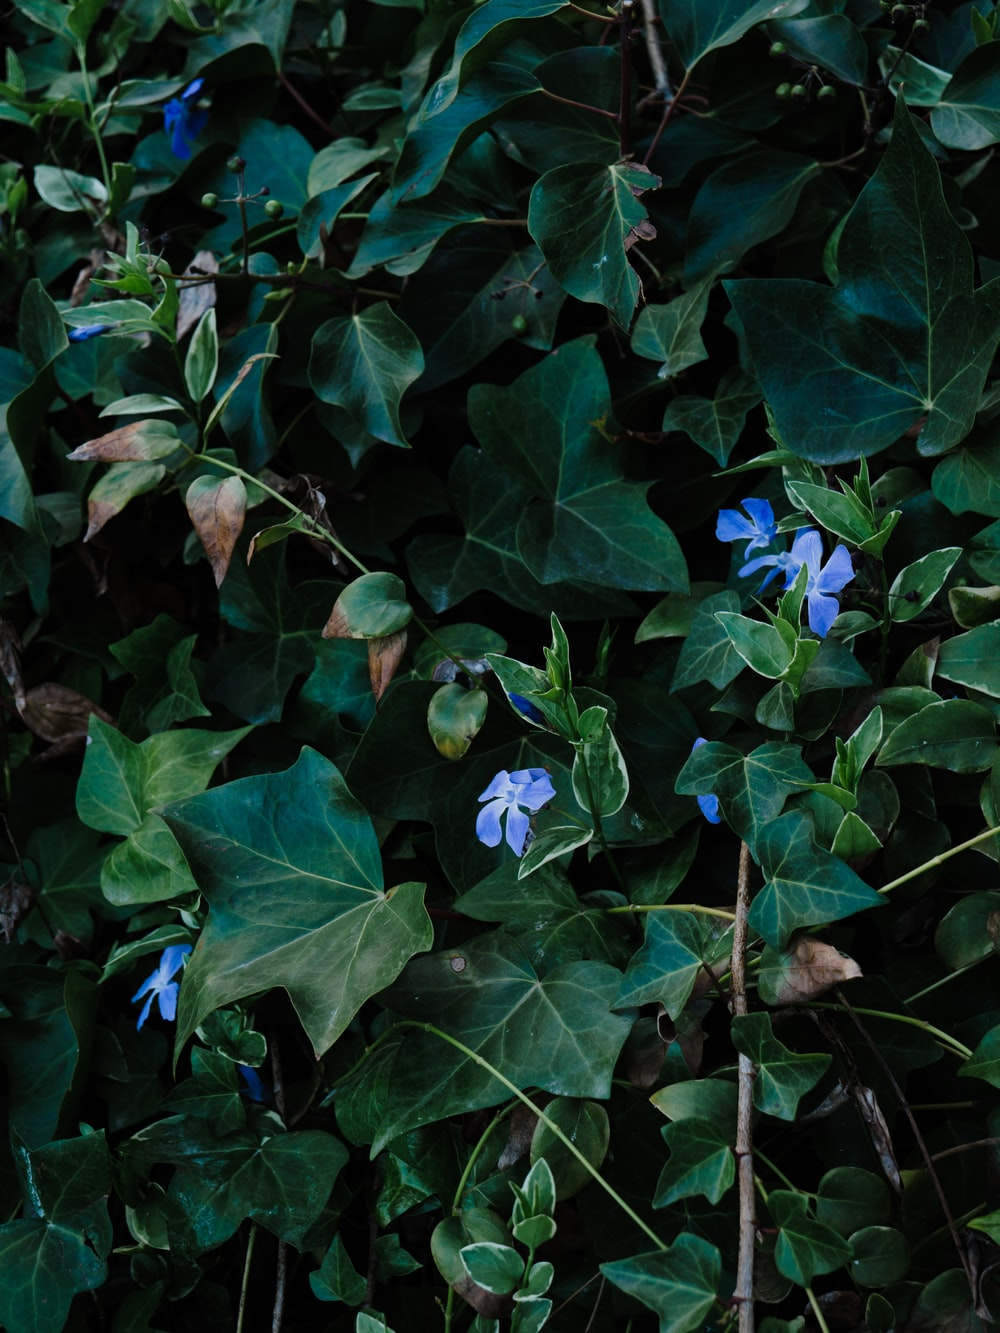 green plant with blue flowers